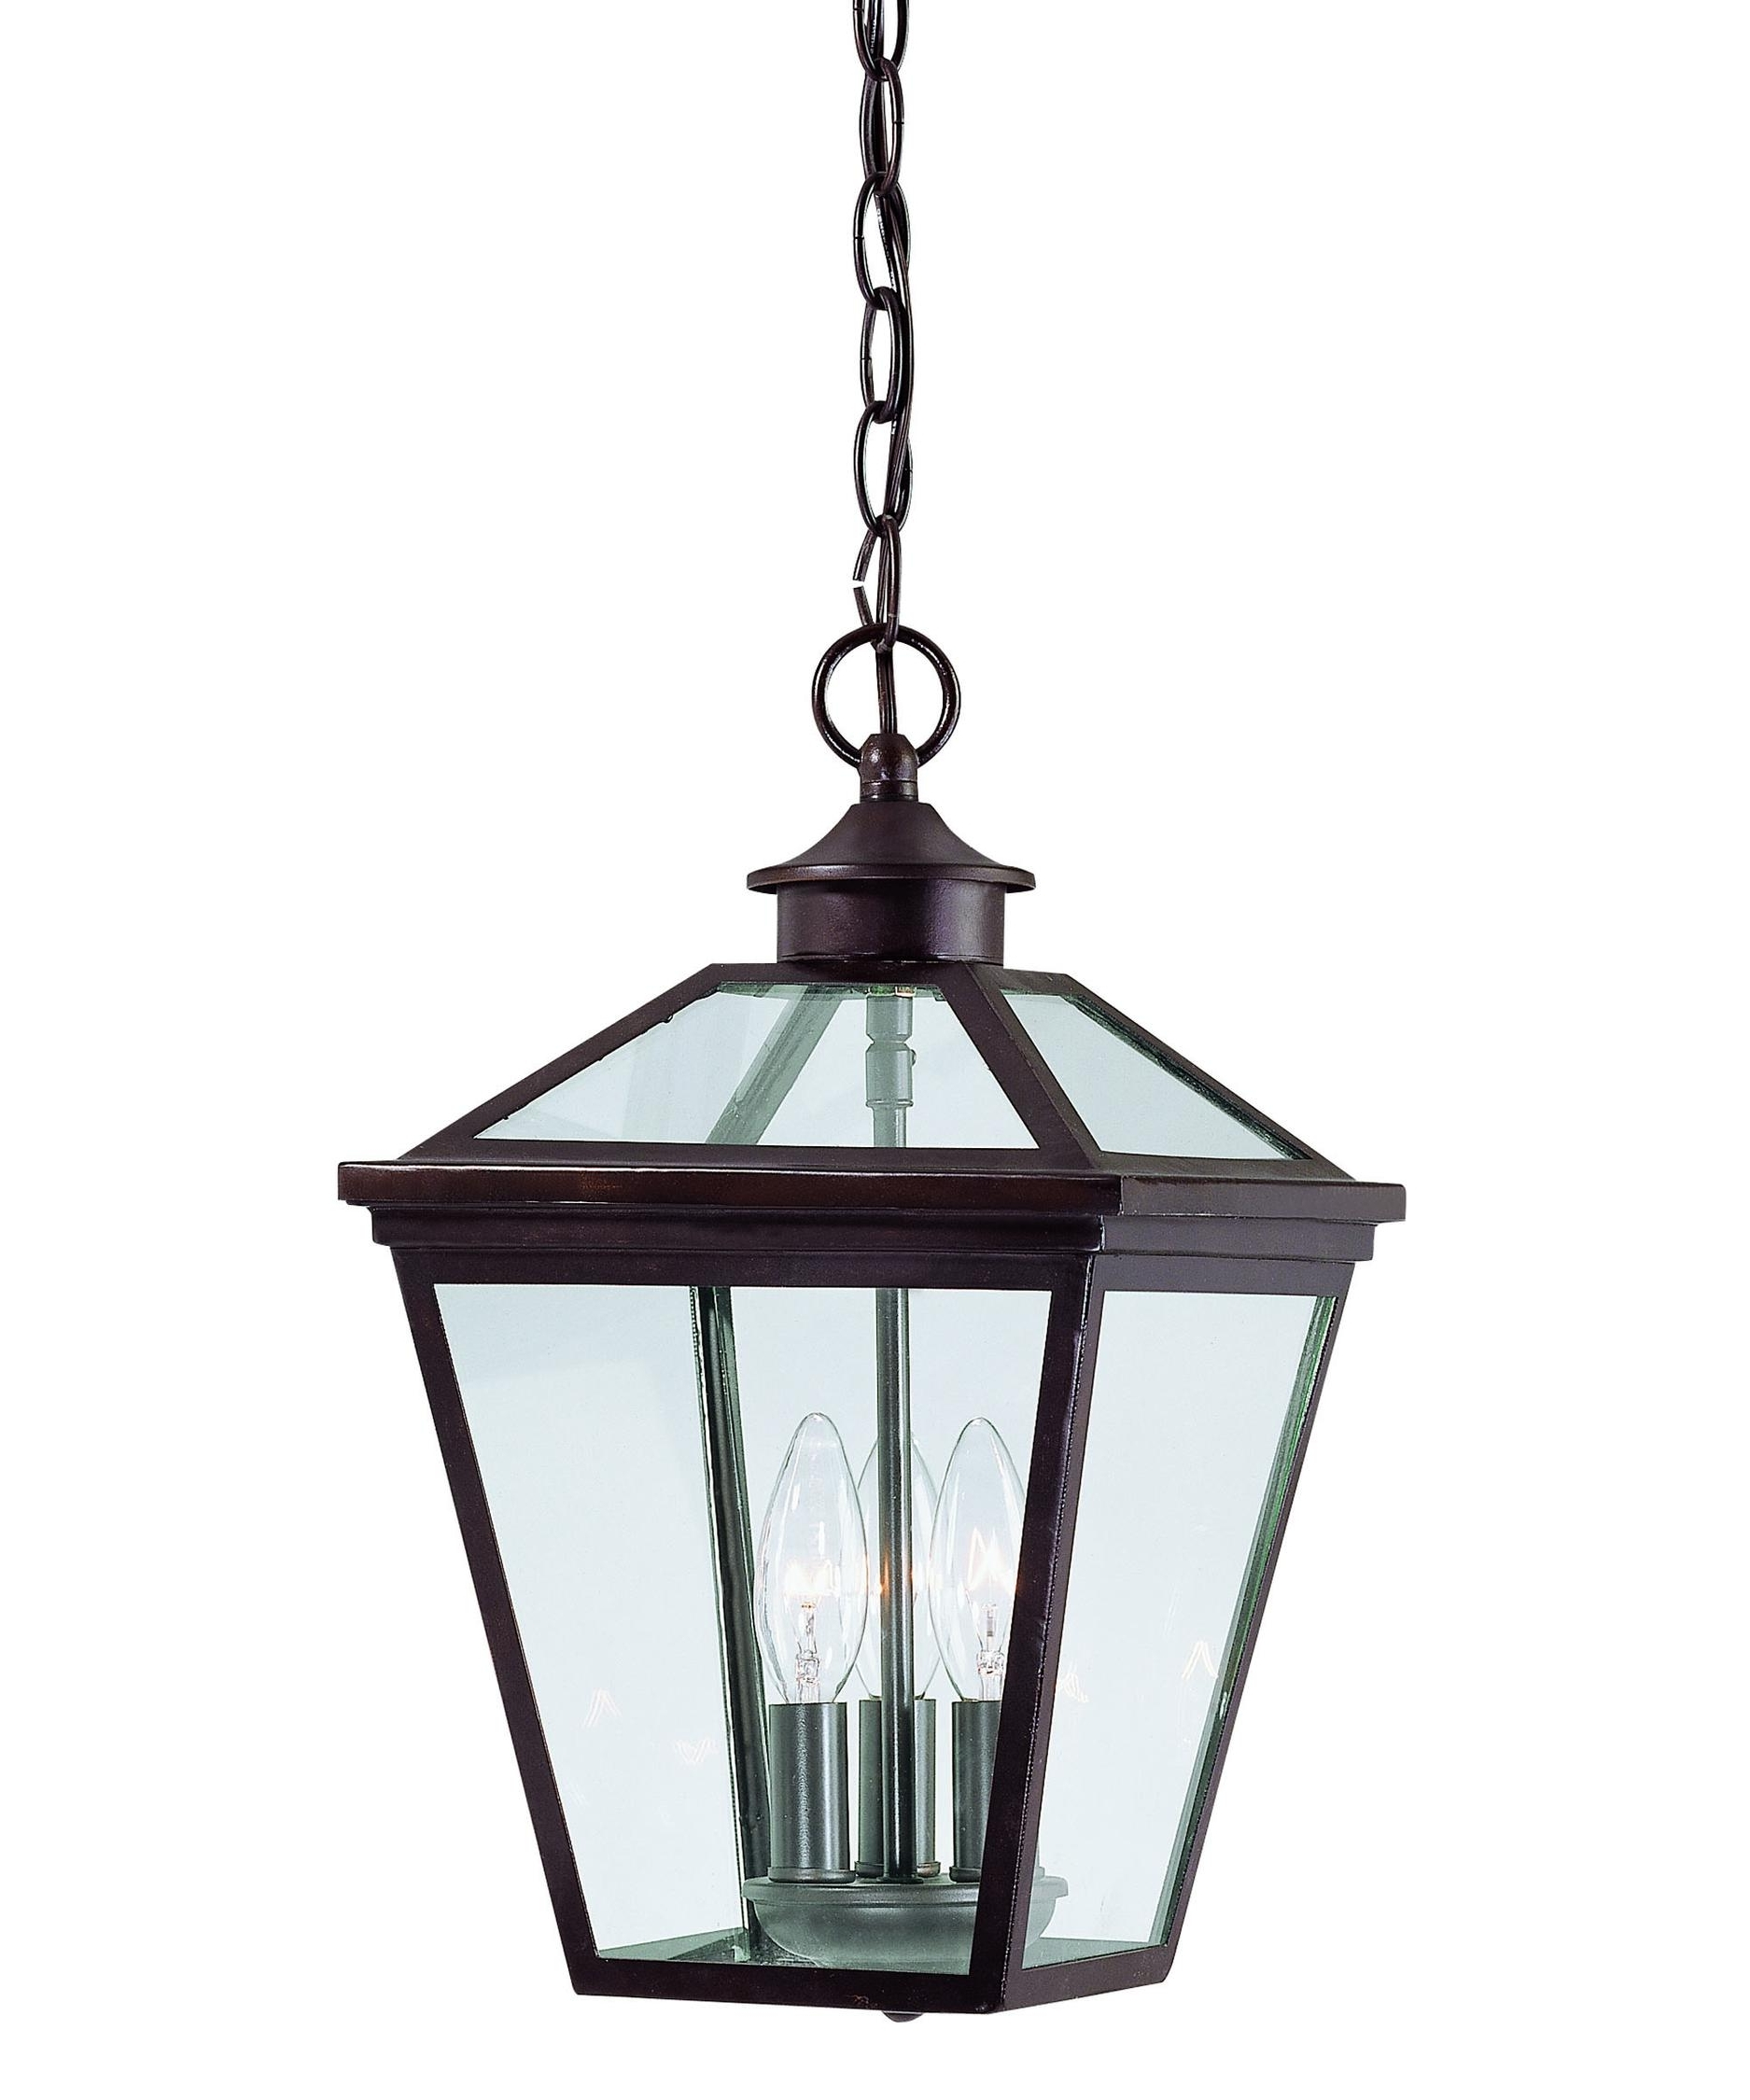 Outdoor Hanging Lantern Lights Throughout Newest Savoy House 5 146 13 Ellijay 9 Inch Wide 3 Light Outdoor Hanging (View 3 of 20)